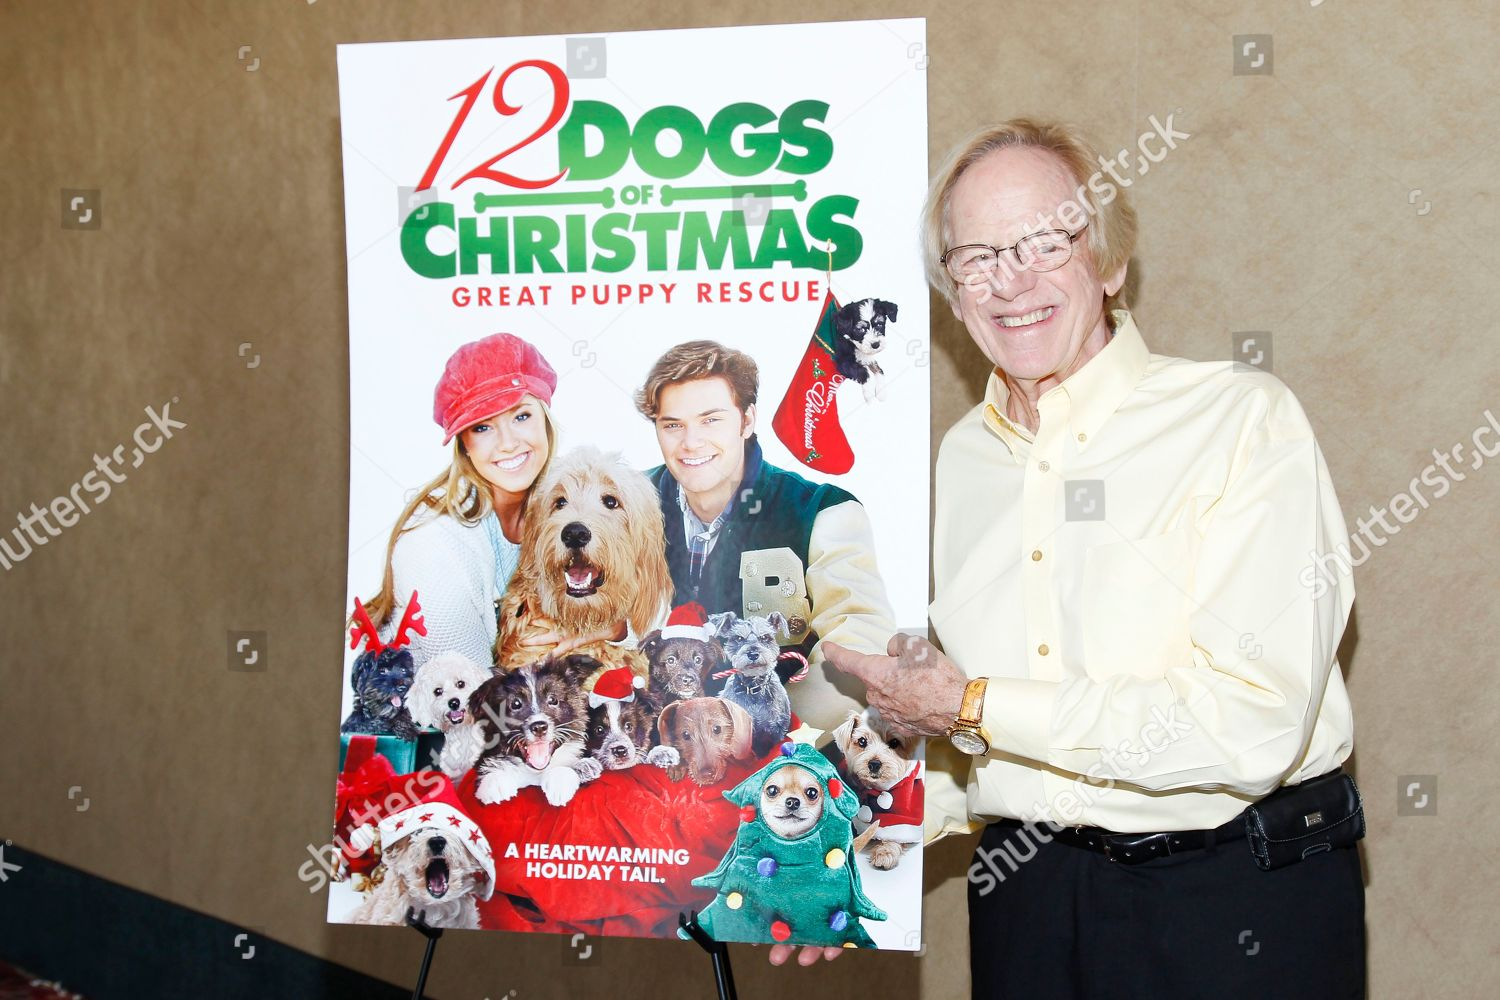 12 Dogs Of Christmas.Producer Ken Kragen Seen 12 Dogs Christmas Editorial Stock